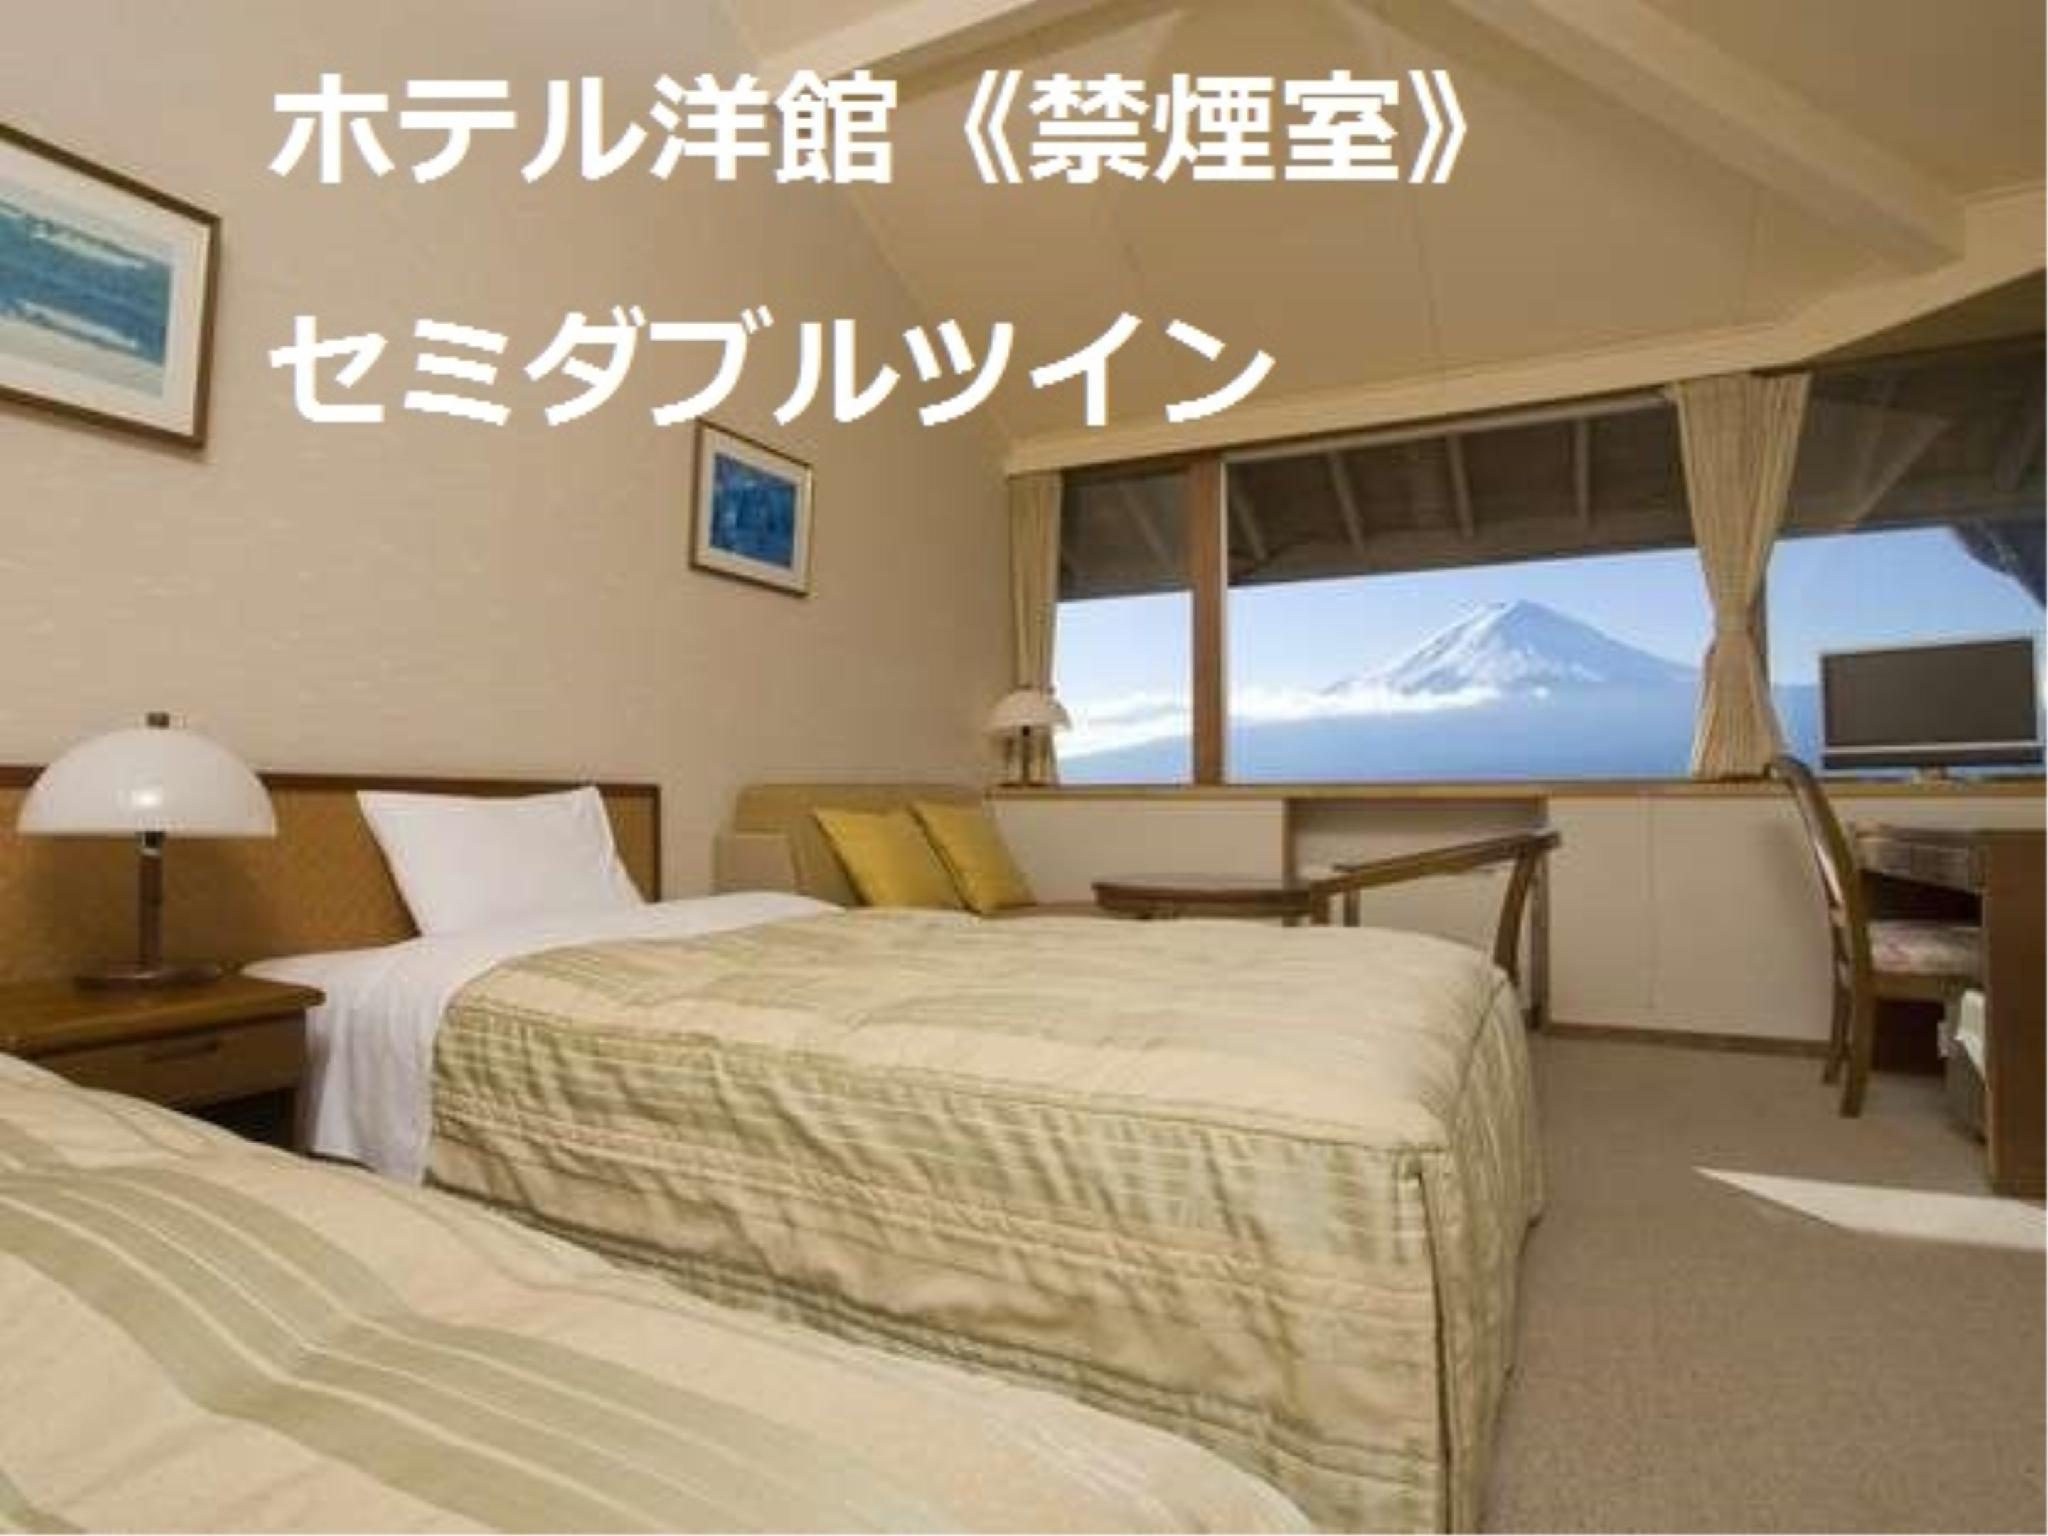 트윈룸(호텔 서양관/세미더블베드) (Twin Room (Semi-double Beds, Hotel Western-style Building))